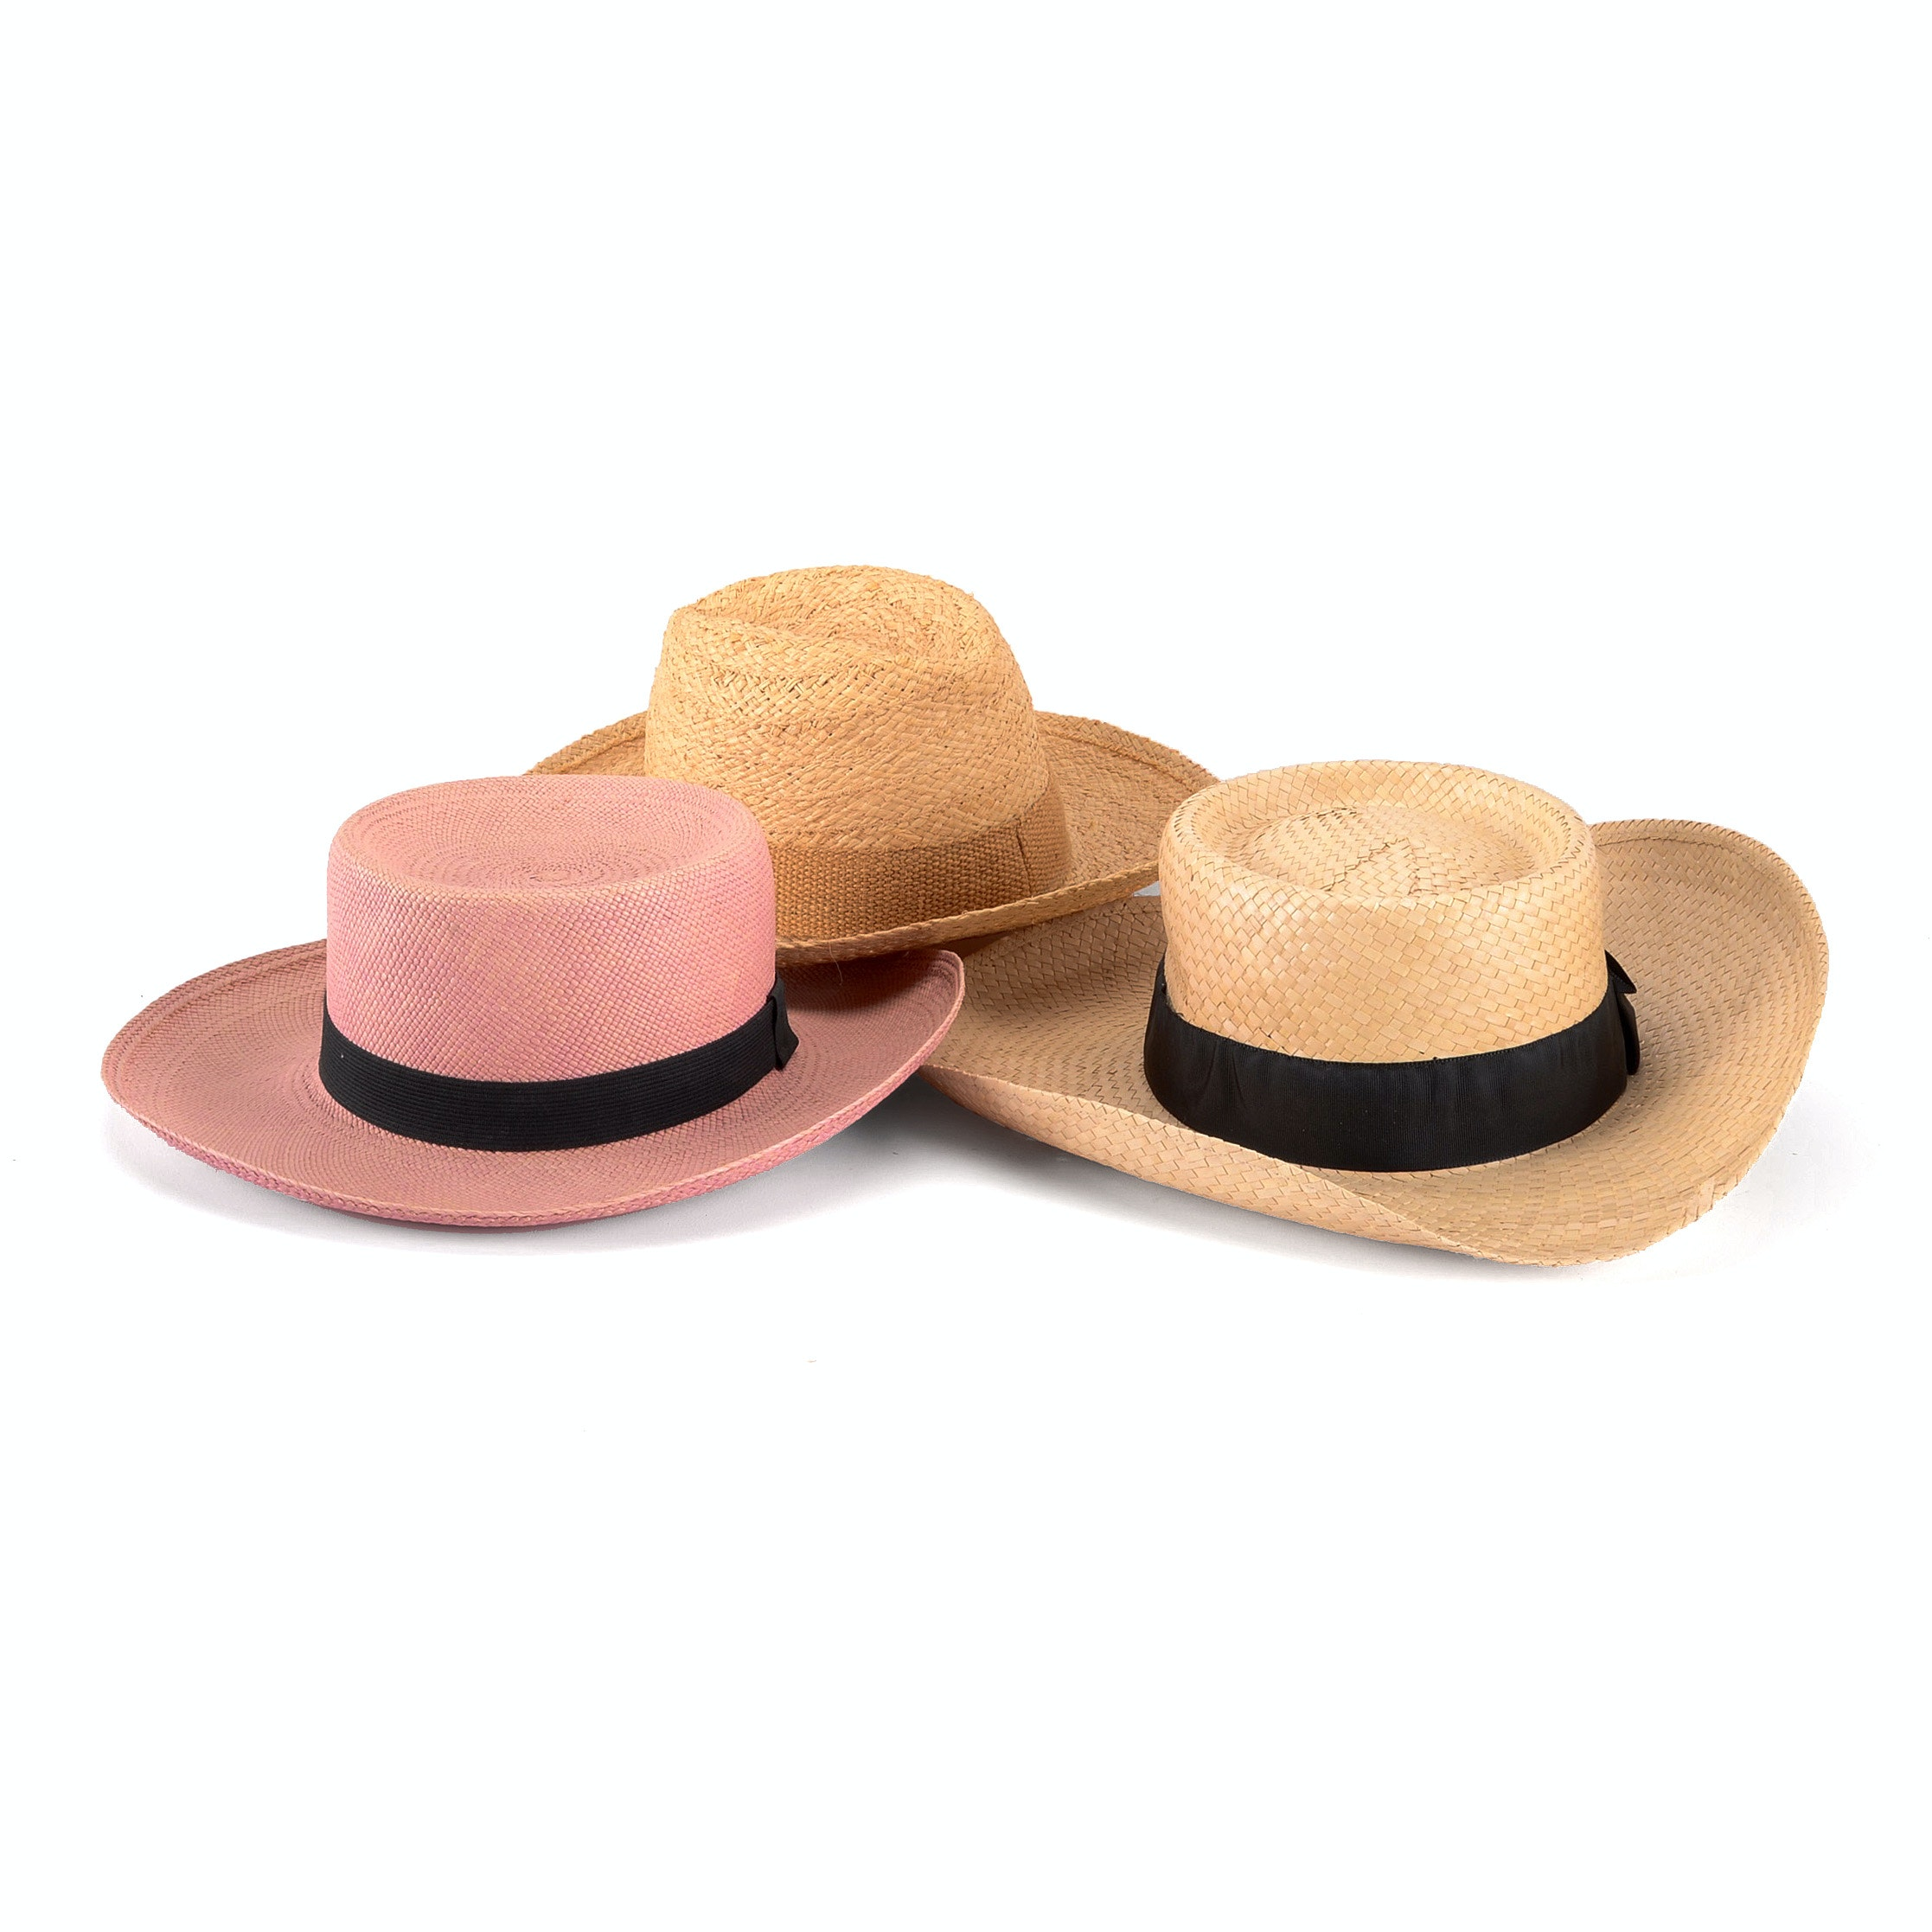 Assorted Straw Hats